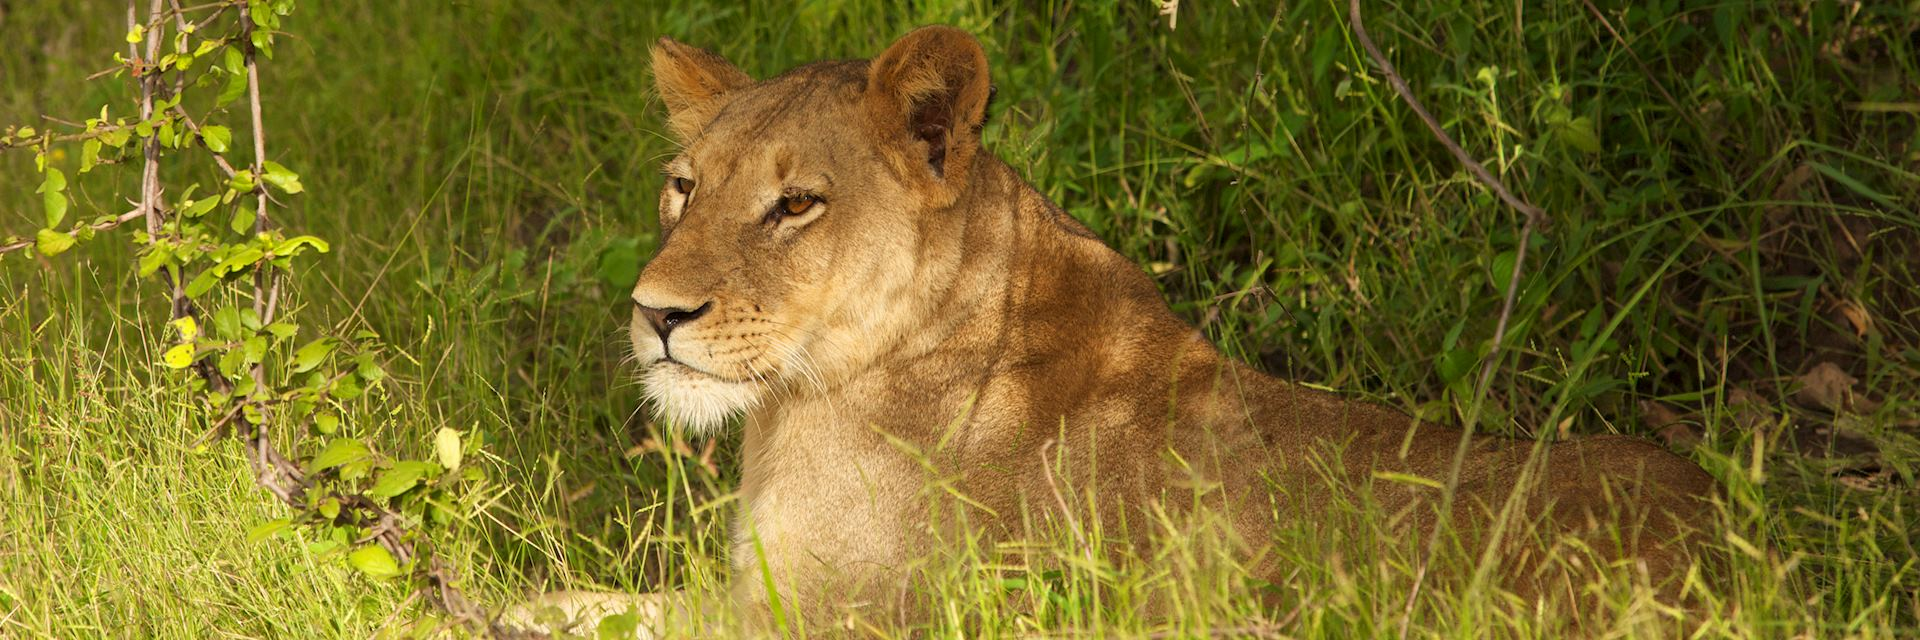 Lioness in North Luangwa National Park